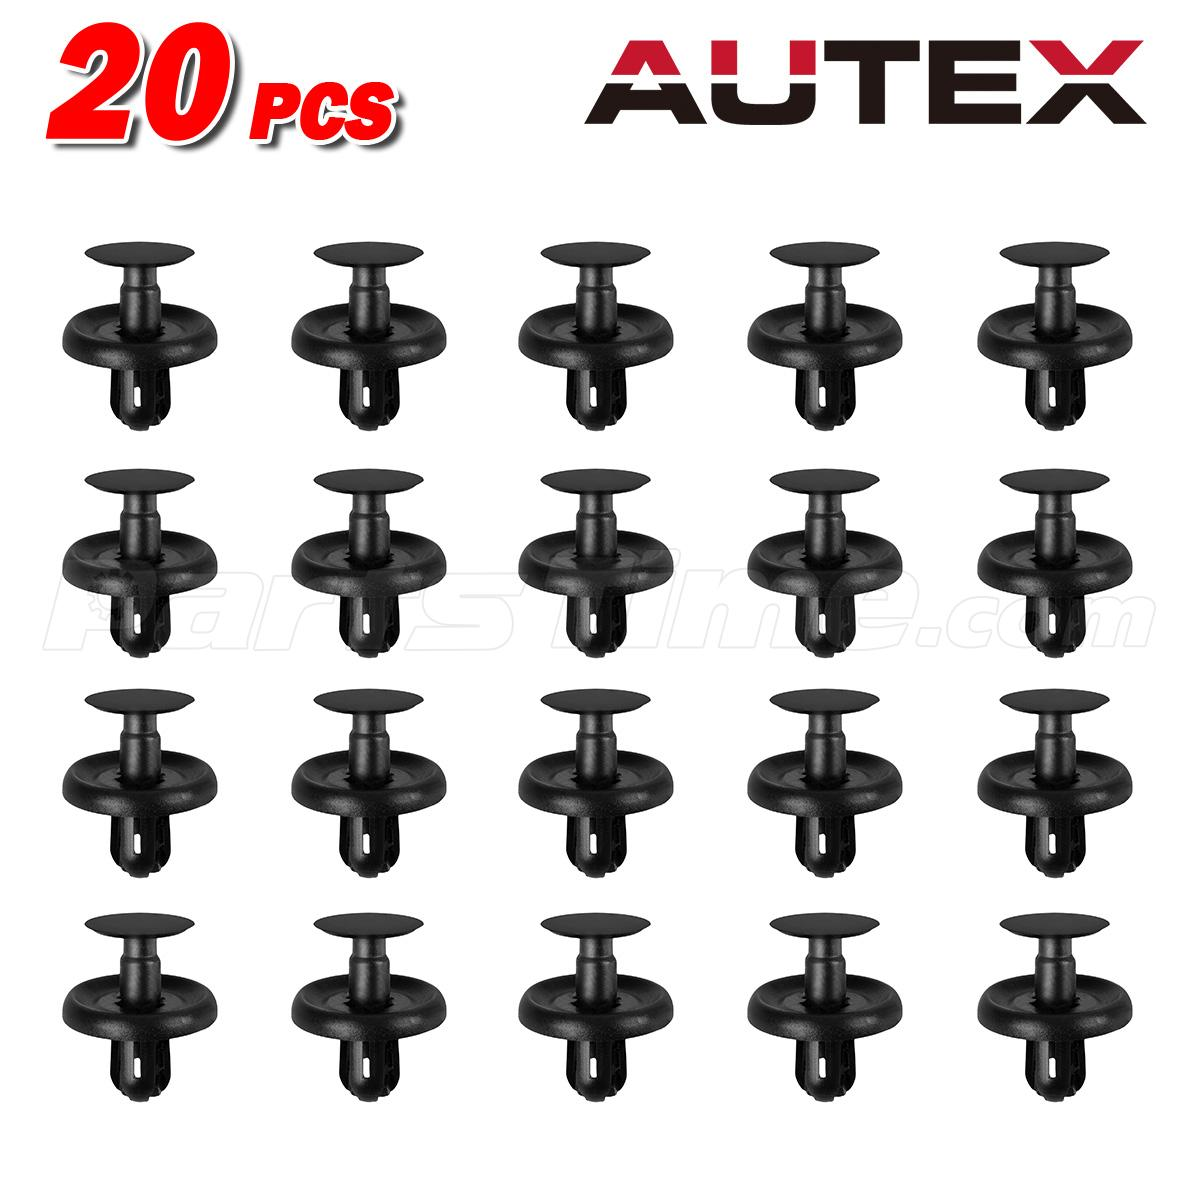 20pcs Bumper Fender Hood Plastic Retainer Push Rivet For